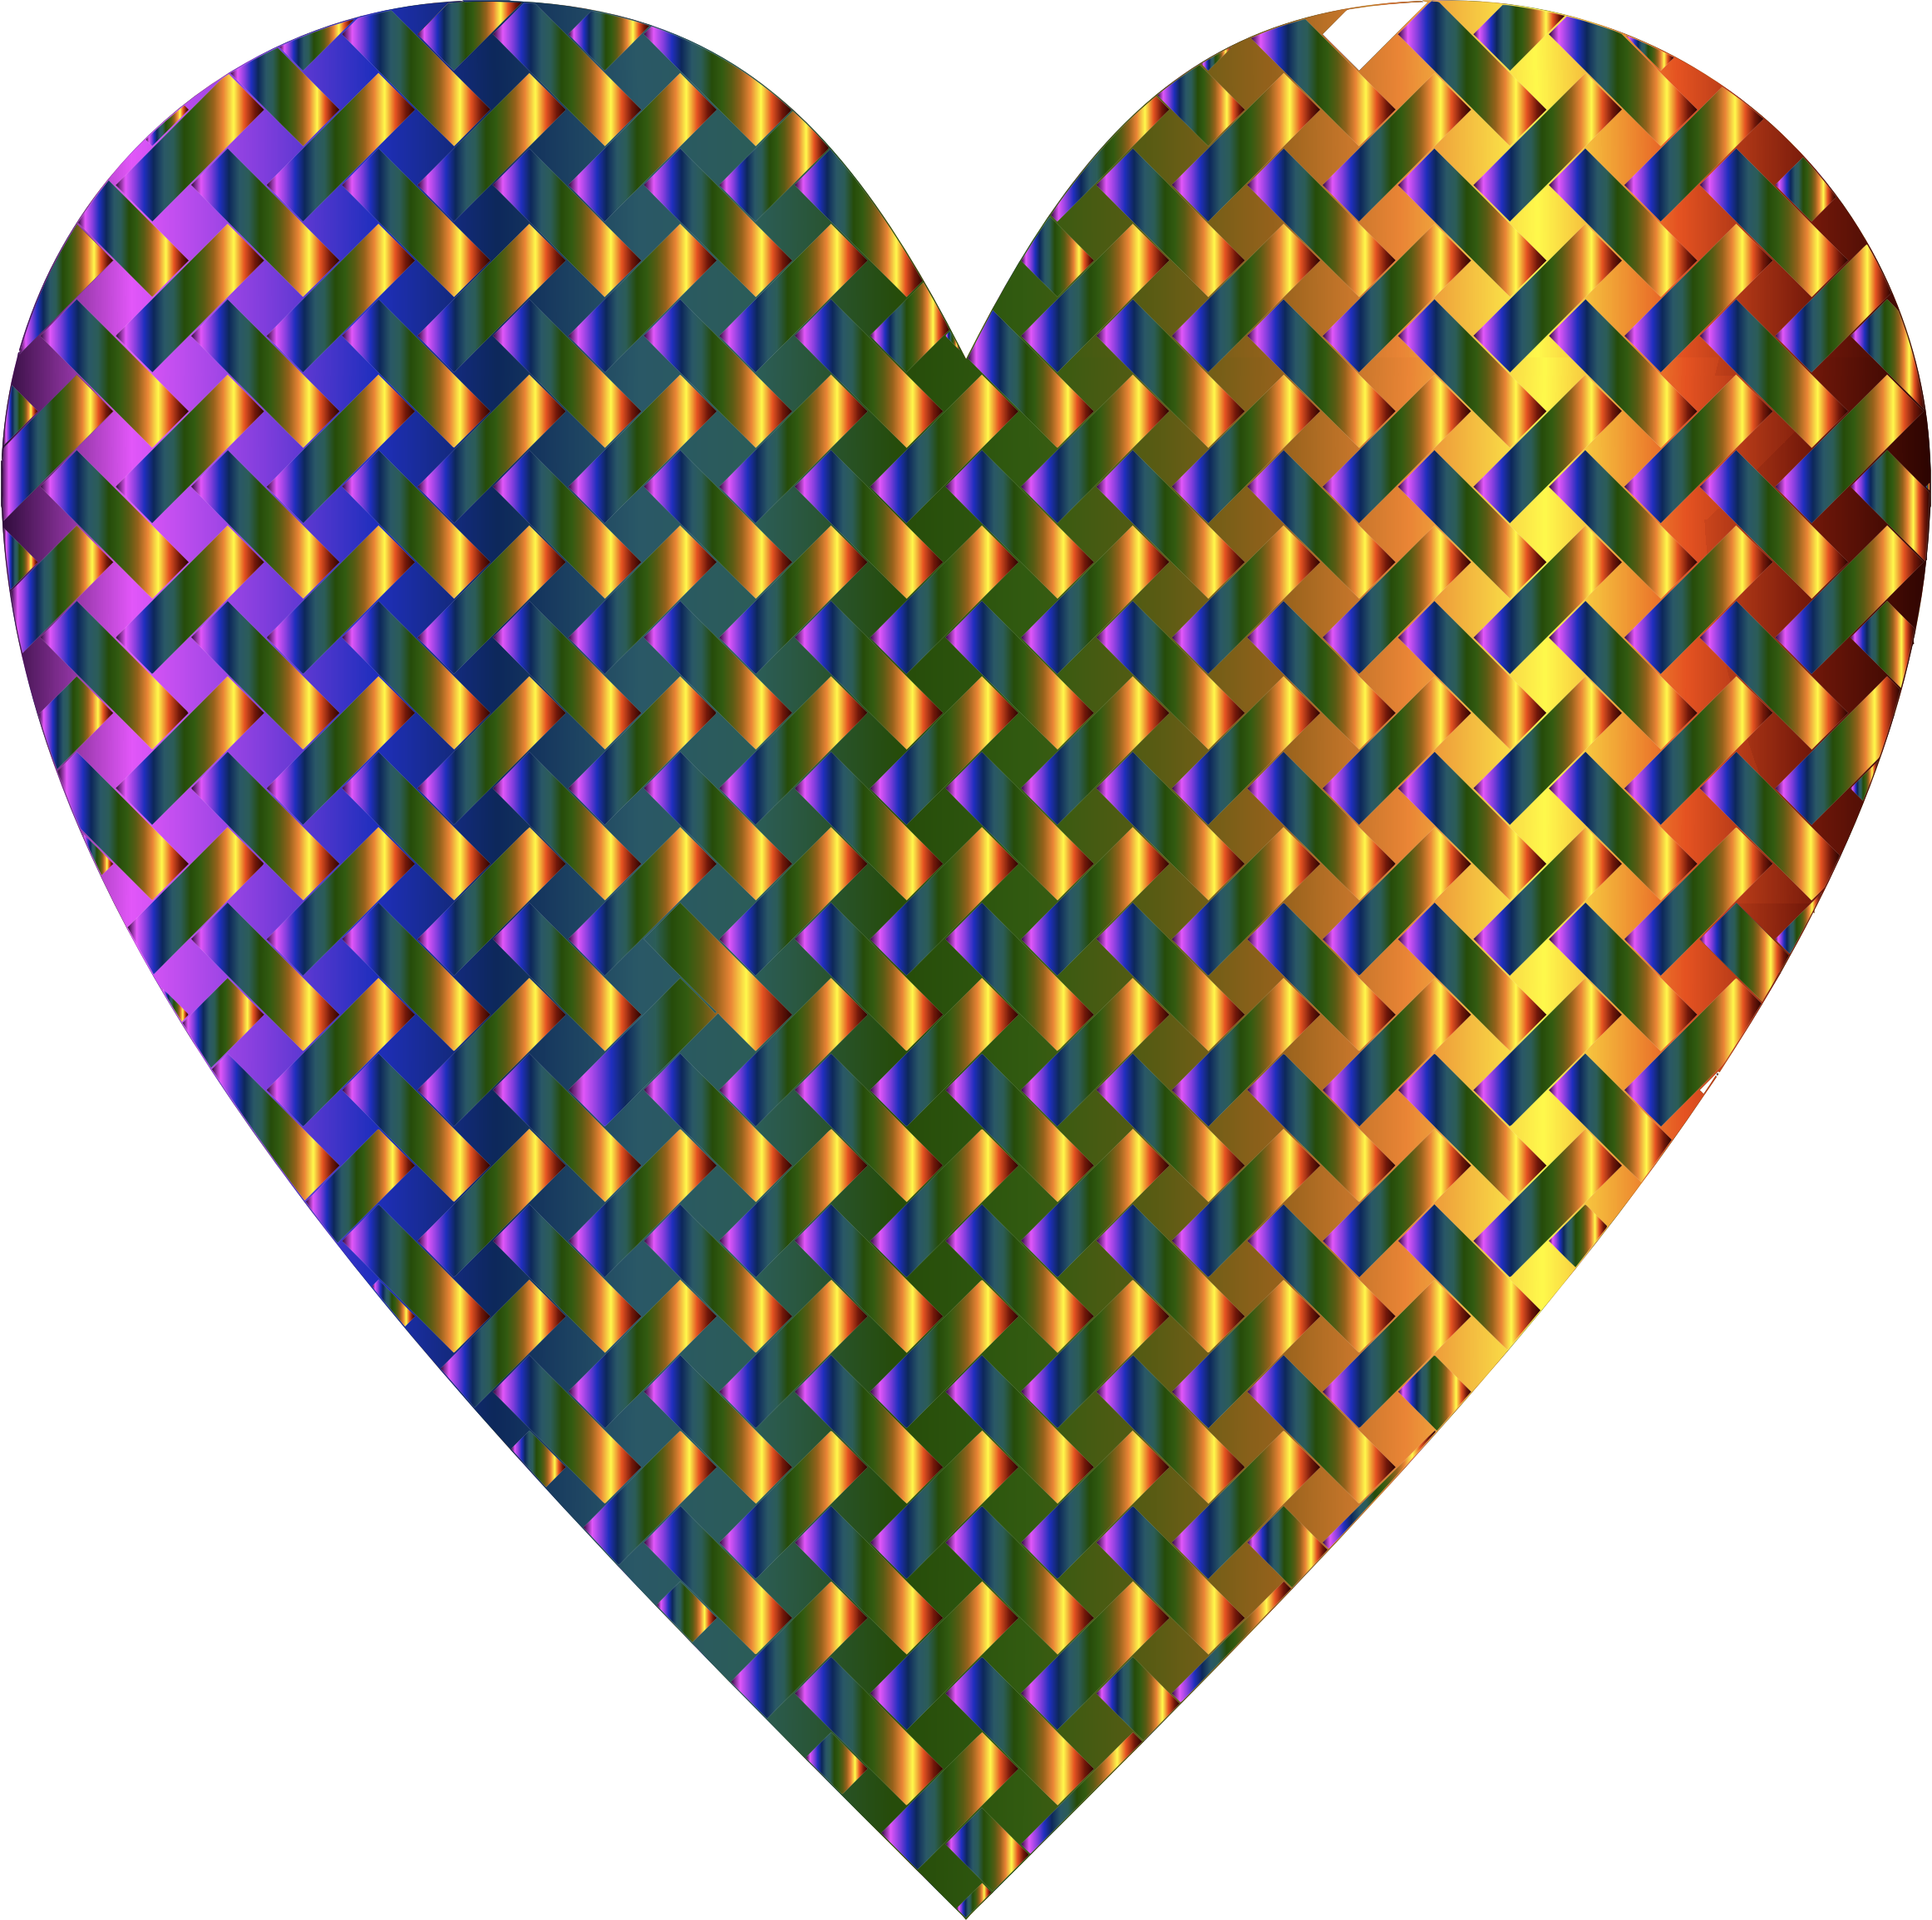 Colorful Heart Lattice Weave 6 by GDJ